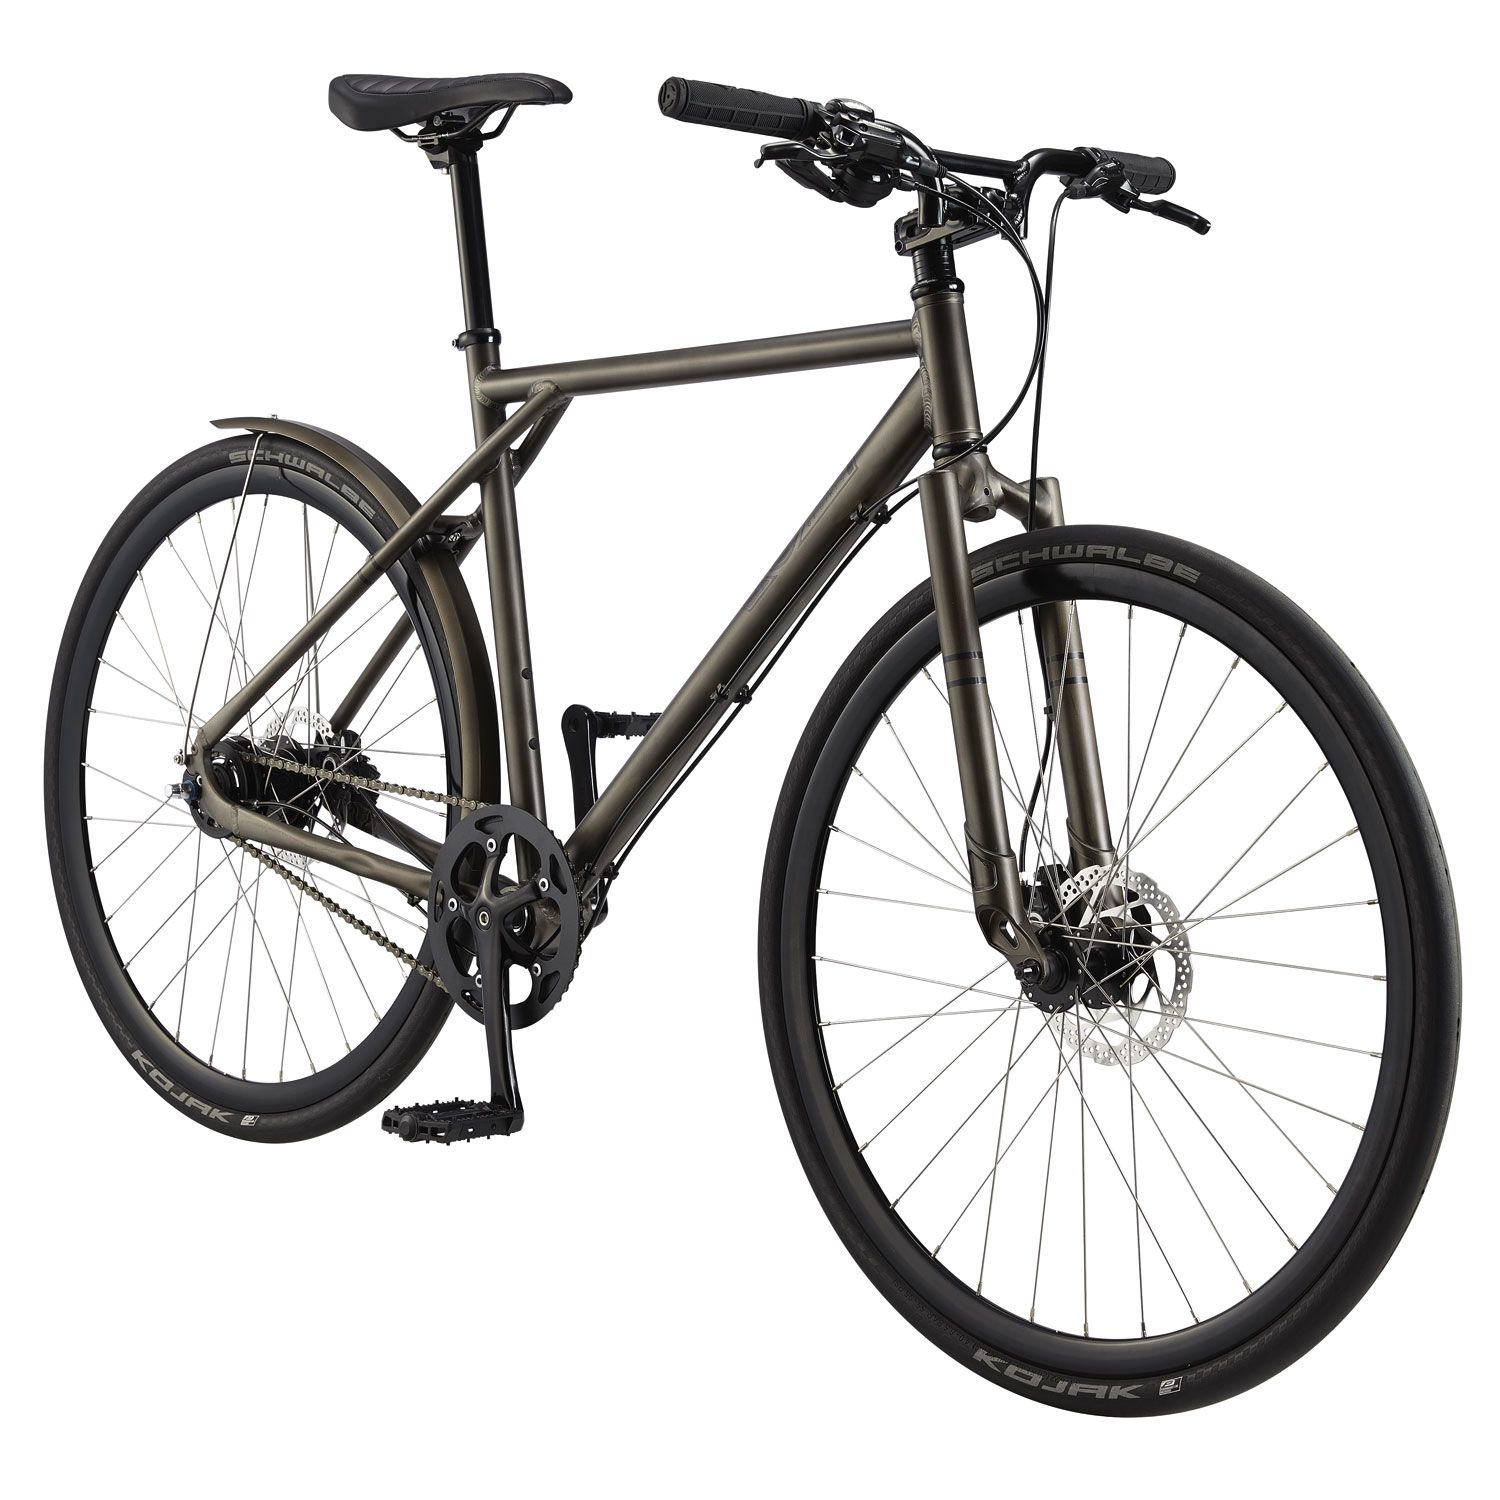 Gt Eightball 700c 8 Speed City Bike 2015 Commuter City Bicycle